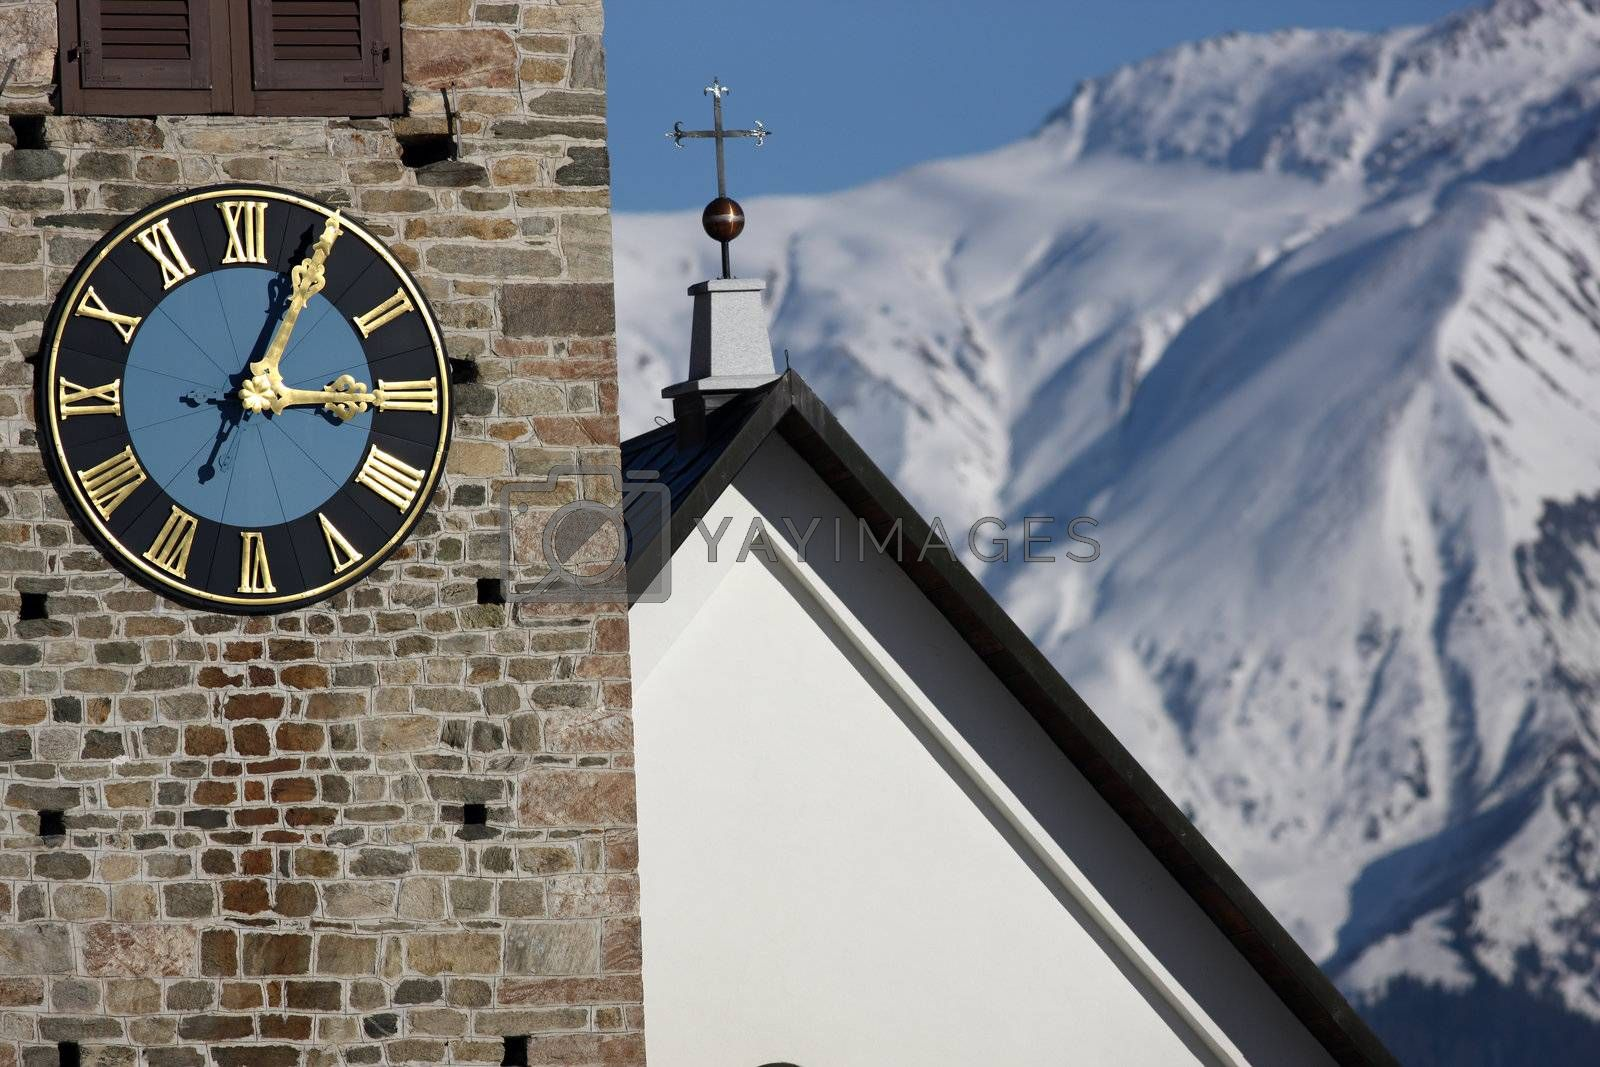 Royalty free image of Detail view of a clock on a church tower by monner